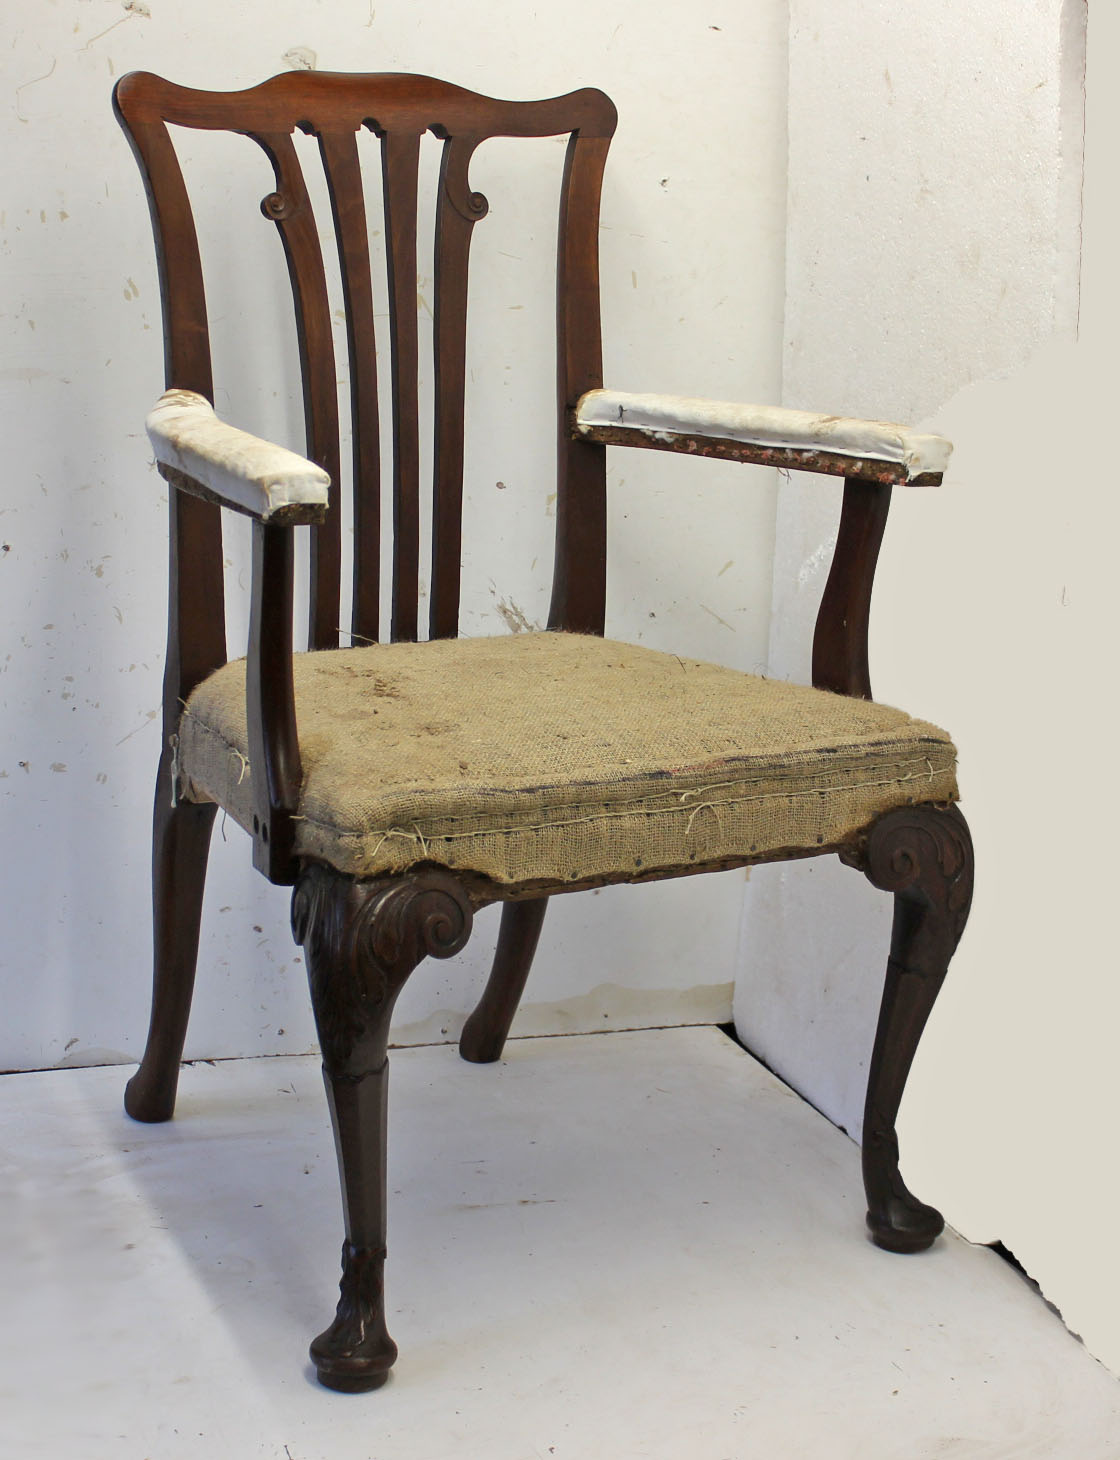 Chair Restoration Oldchairs Ie We Run Weekend Restoration Courses We Also